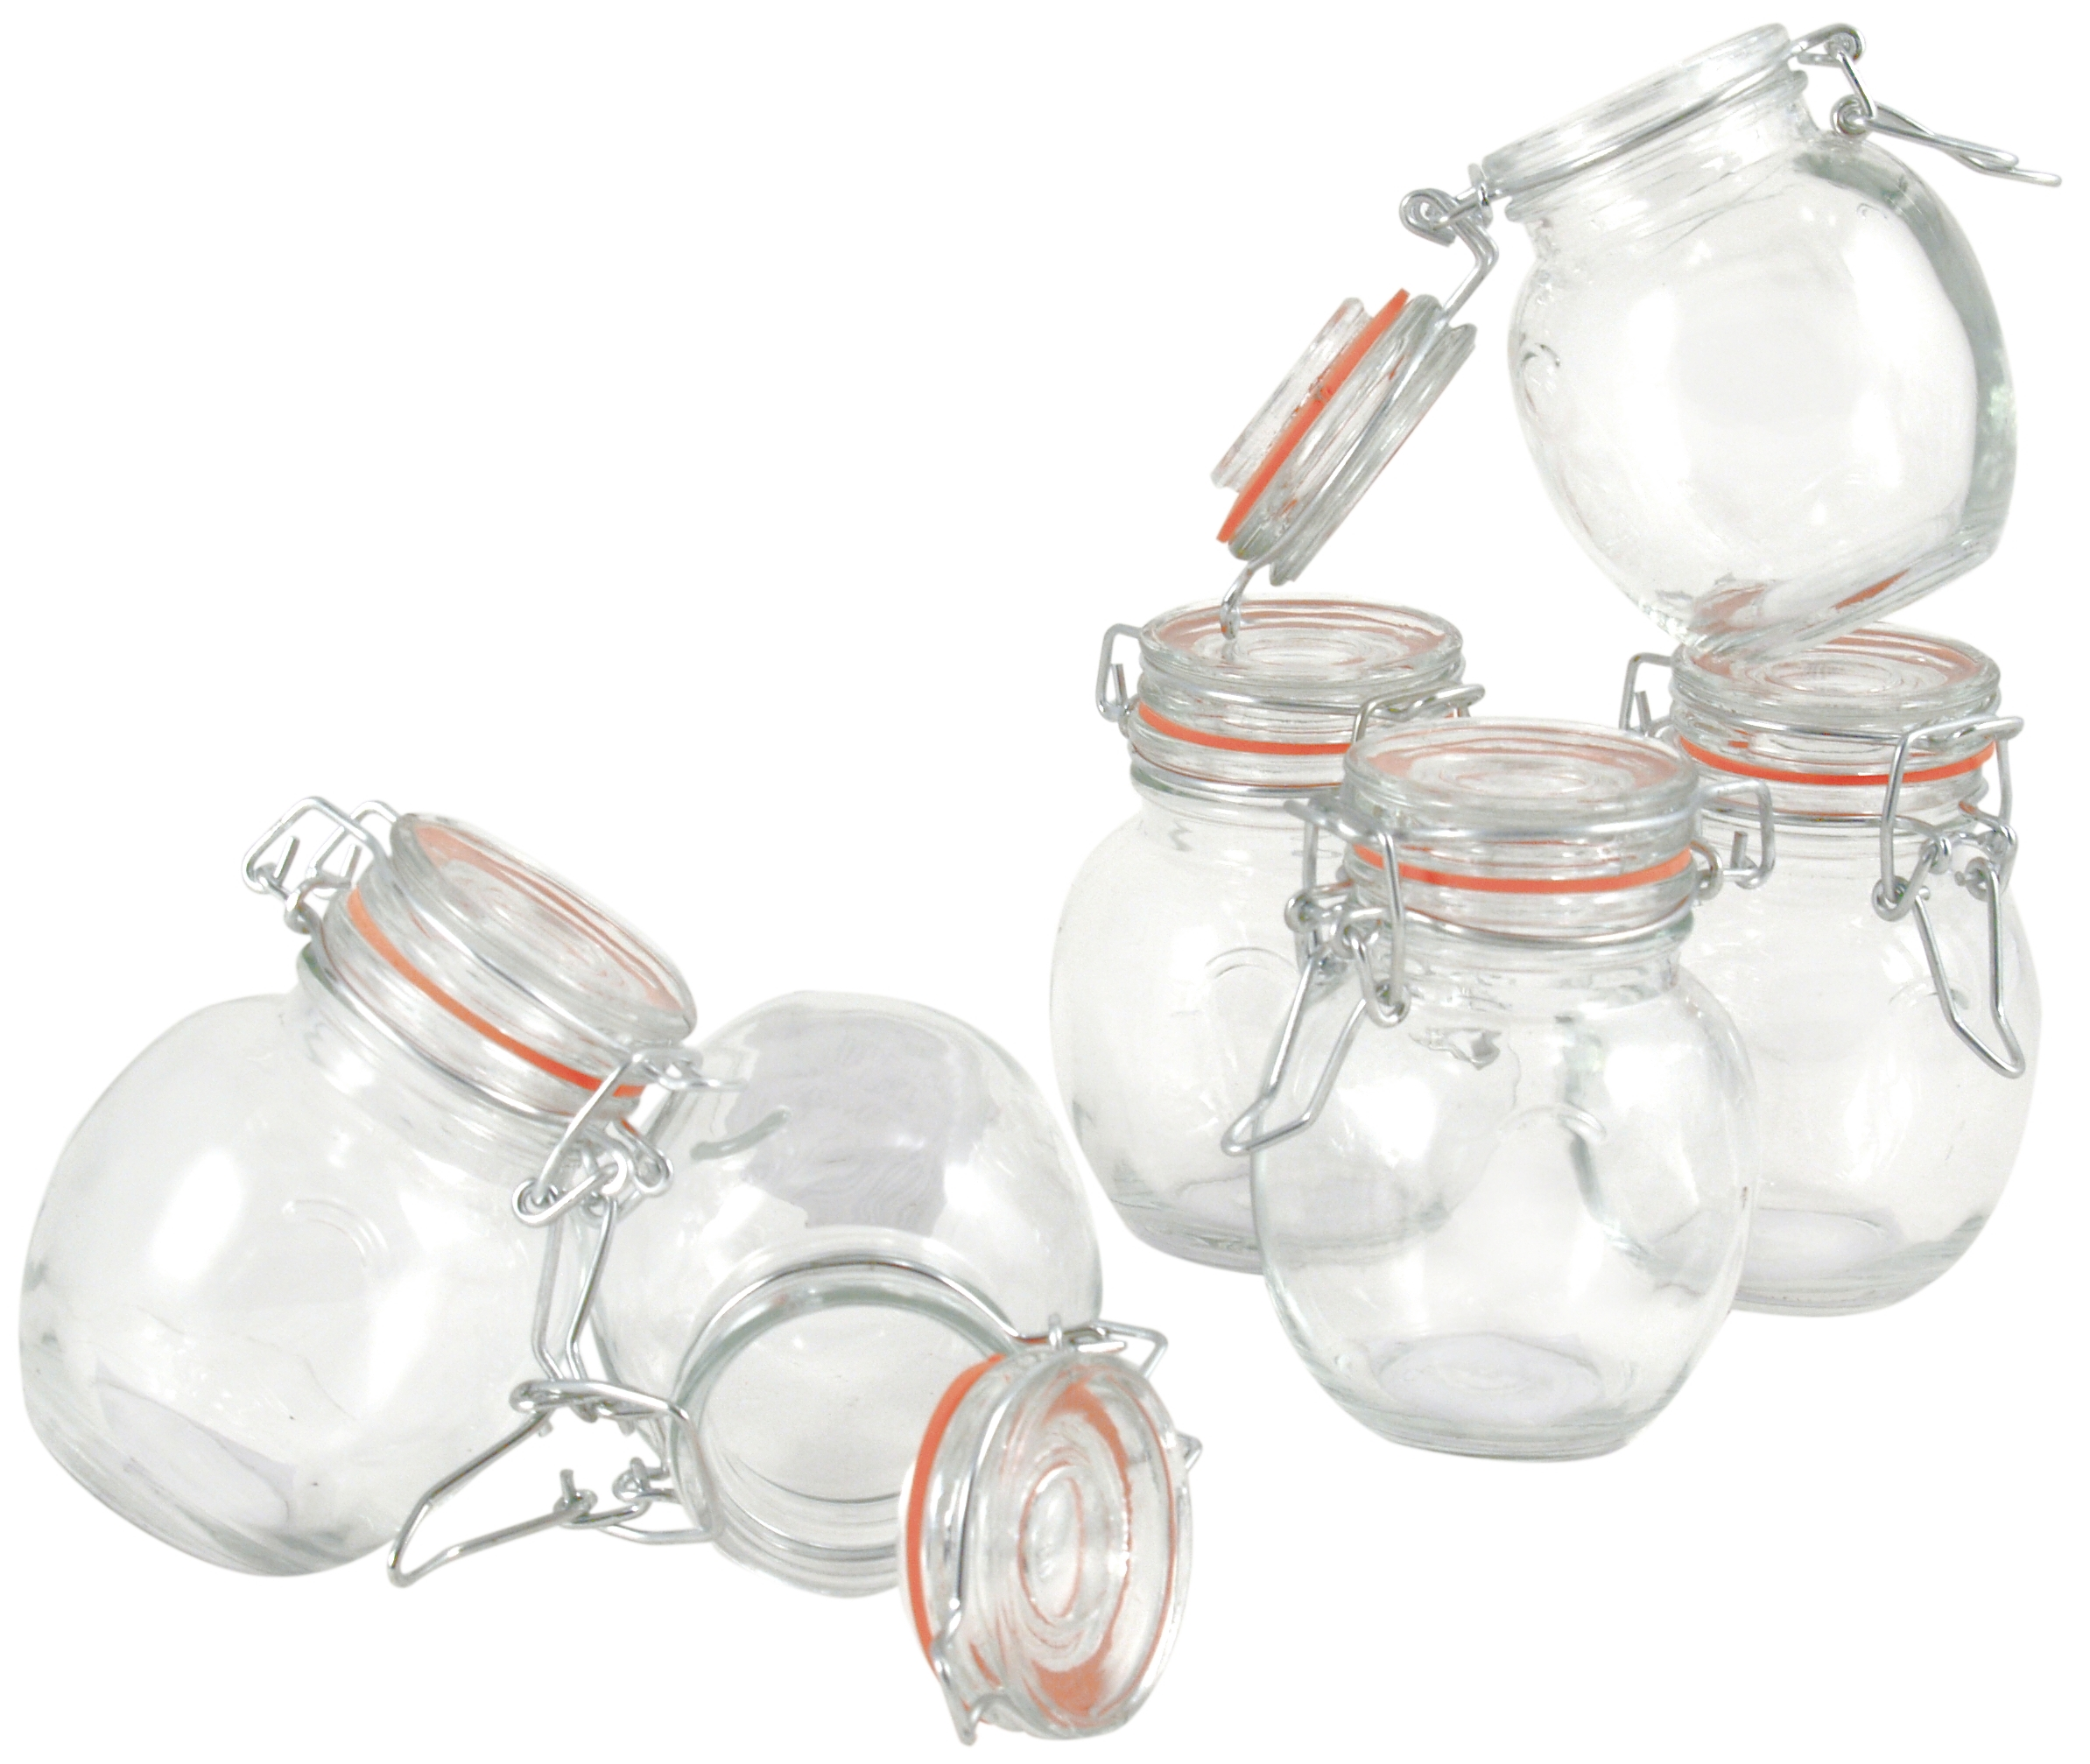 Grant Howard Pot Belly Glass Spice Jar, Set of 24